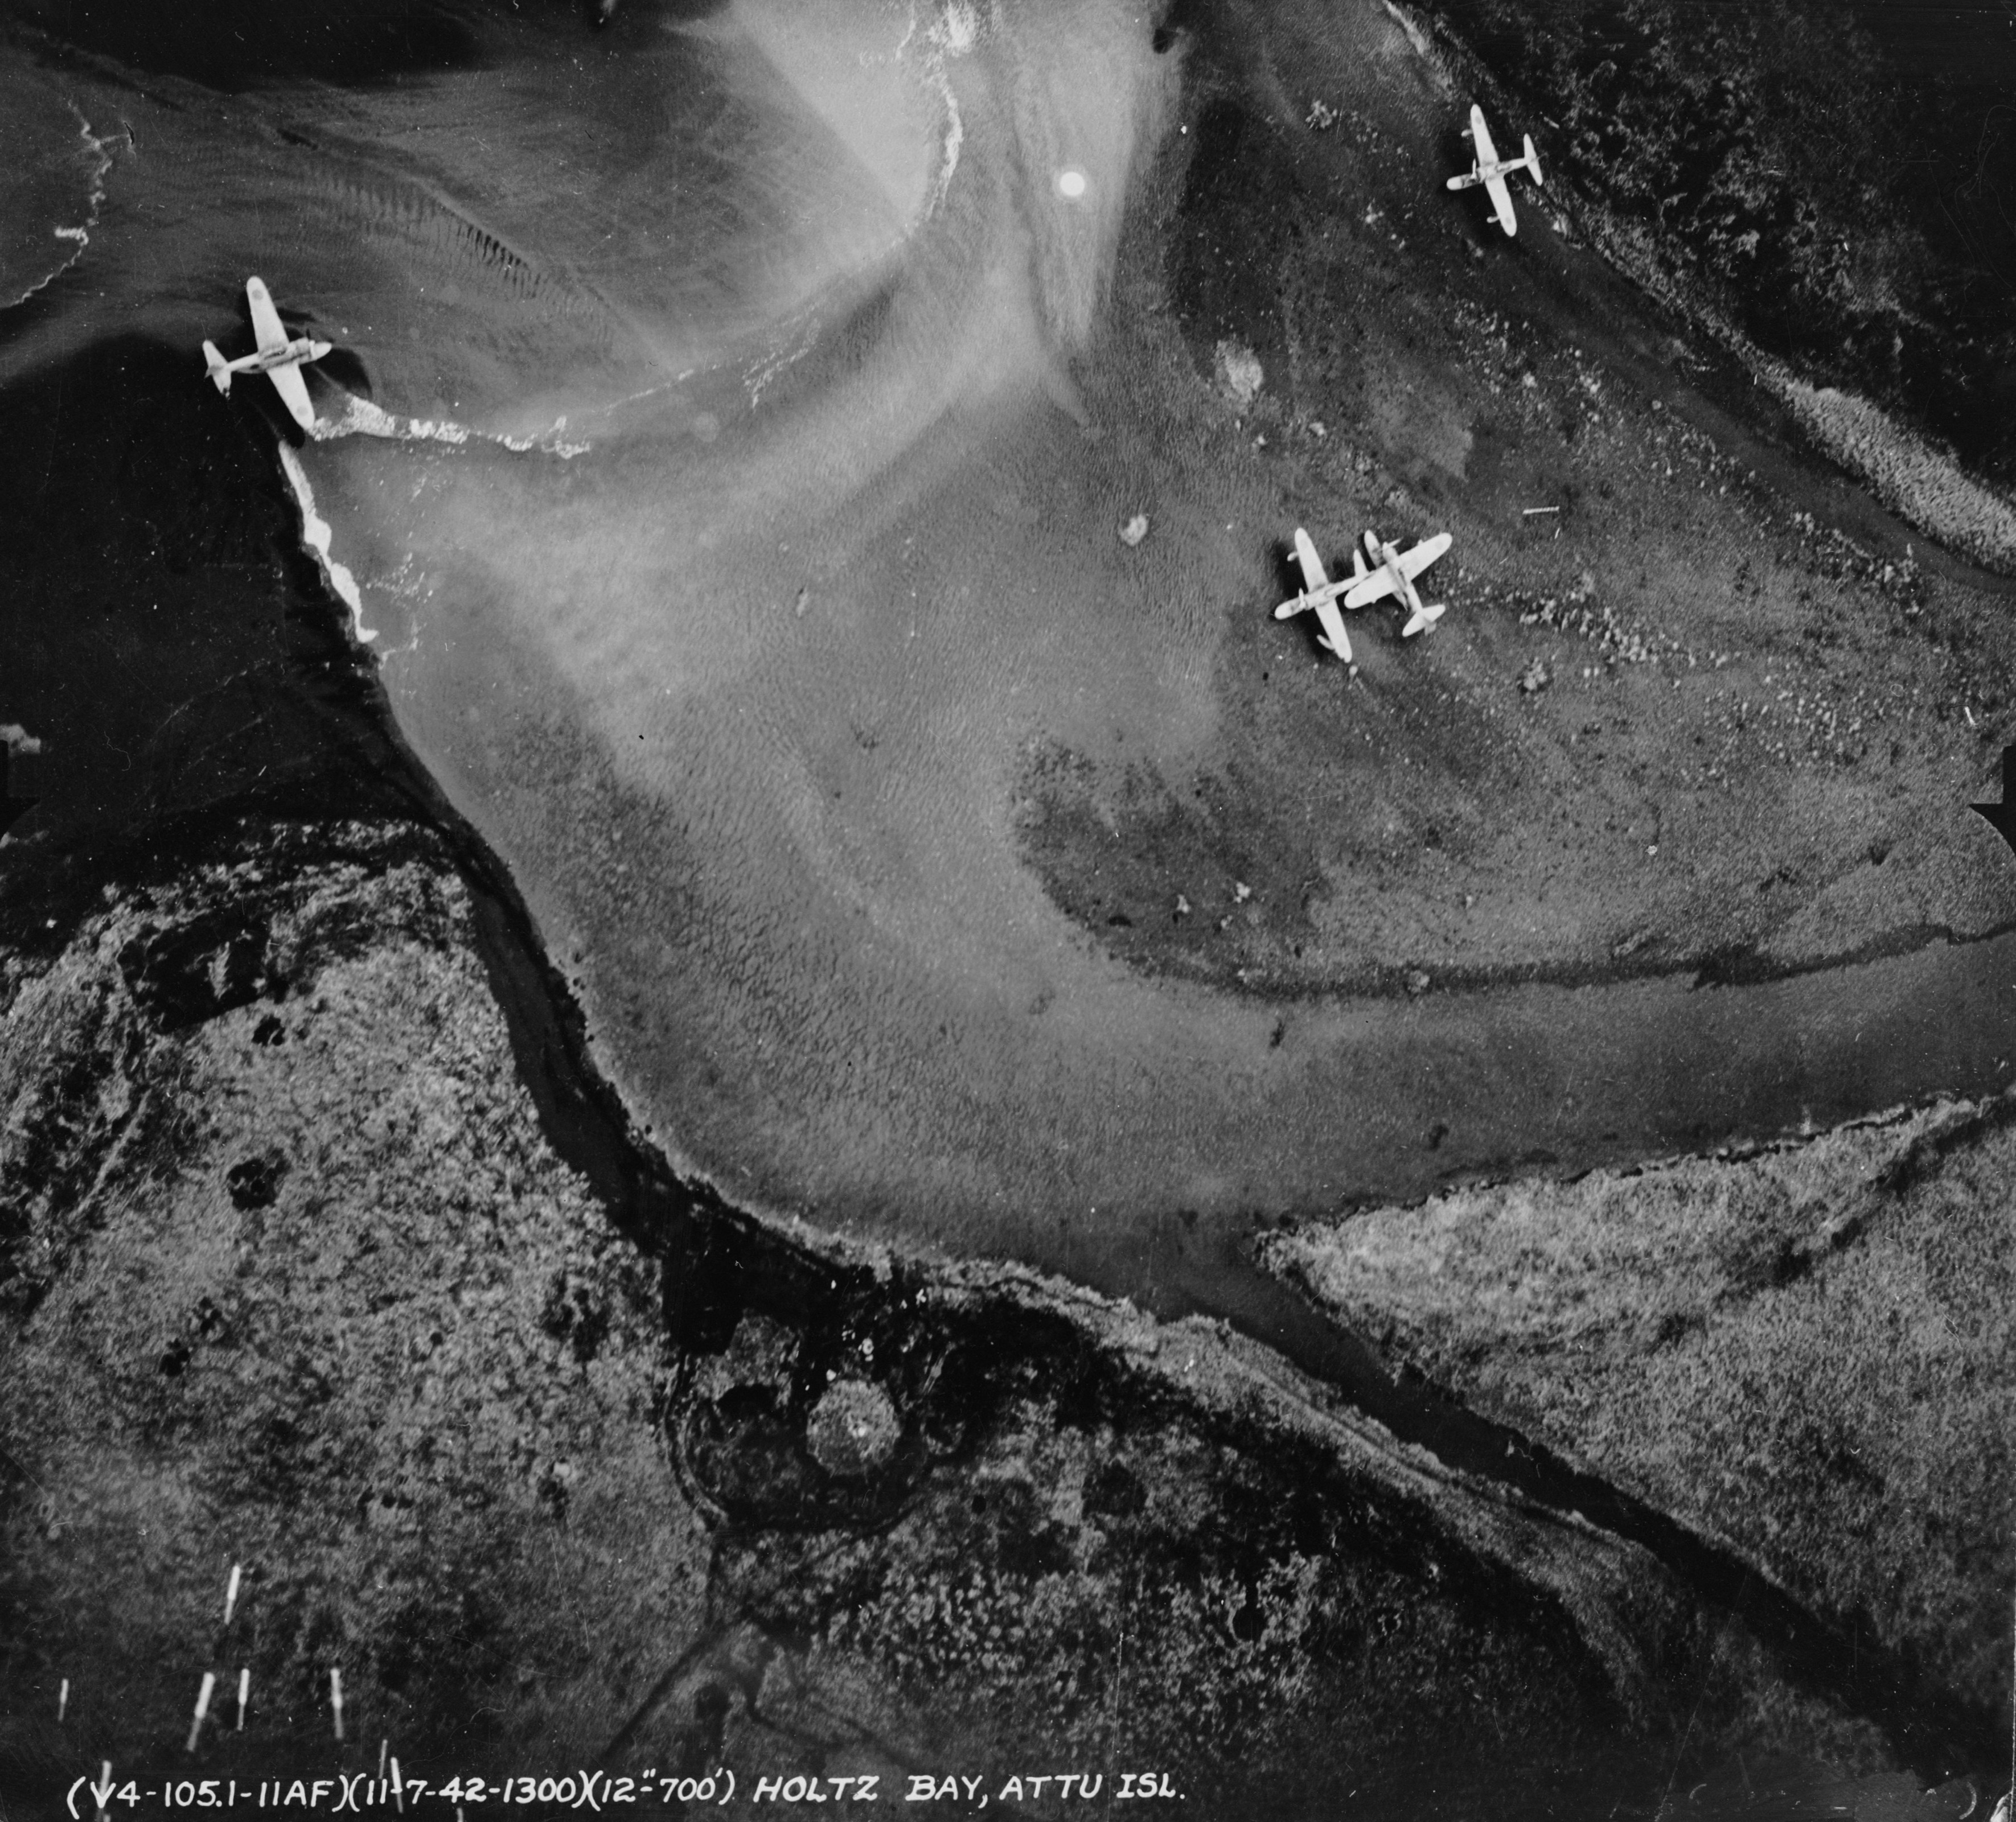 Four Japanese Misubishi A6M-2N Rufe seaplane fighters at Holtz Bay, Attu Island, Aleutian Islands (USA), on November 7, 1942, photographed by a USAAF plane. Note that the two planes in the center obviously have collided and been damaged.